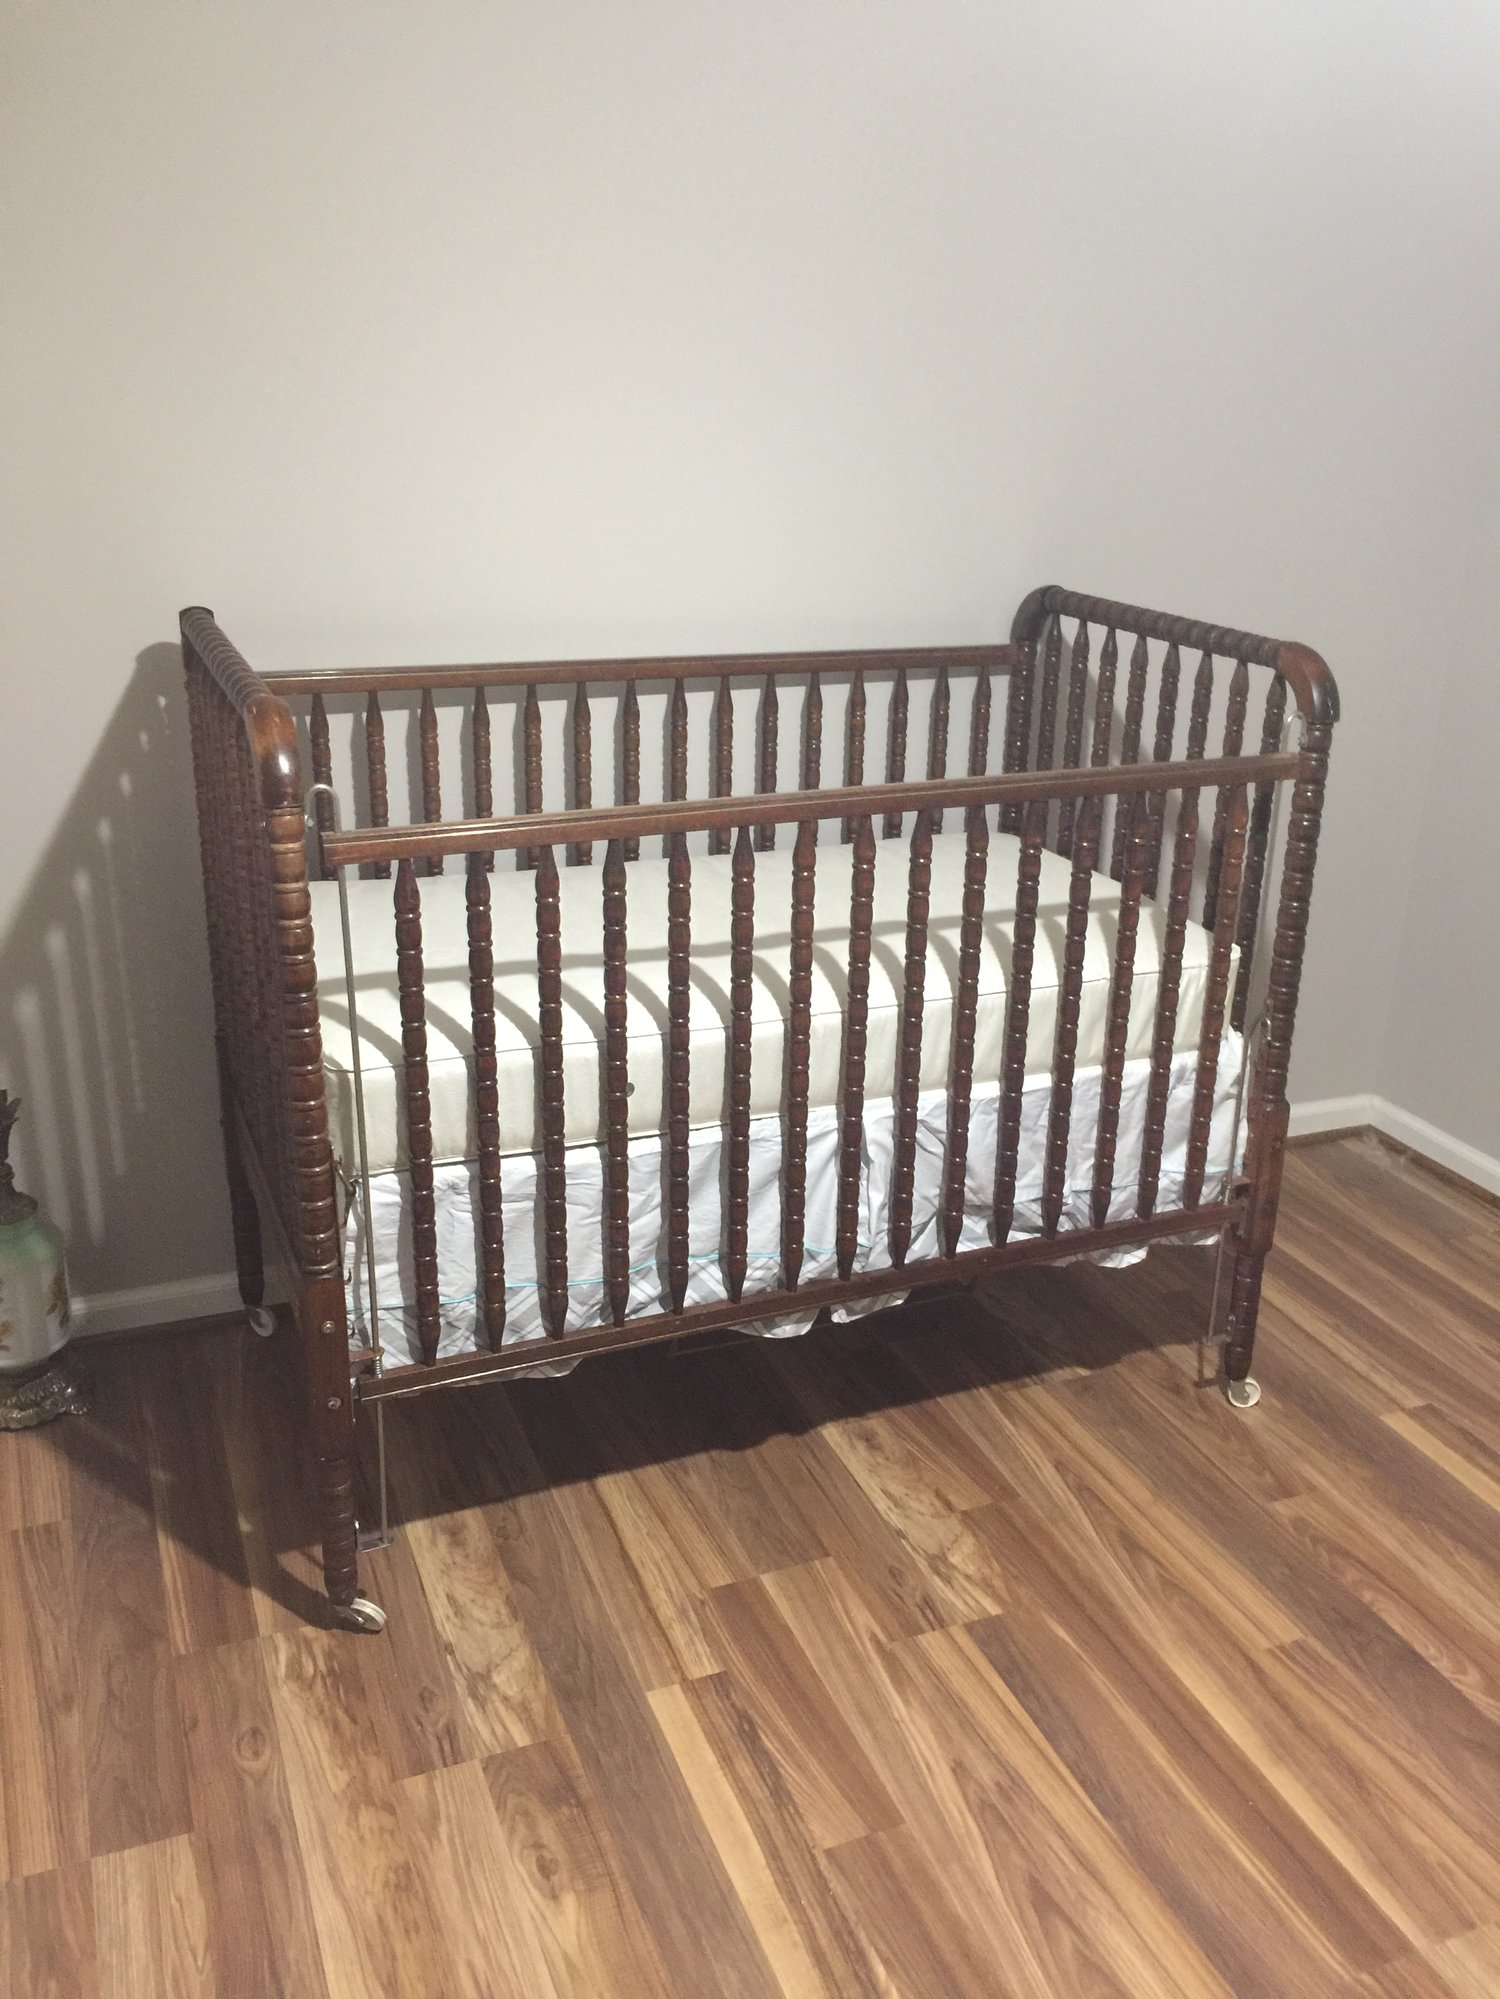 how to put a crib together without instructions